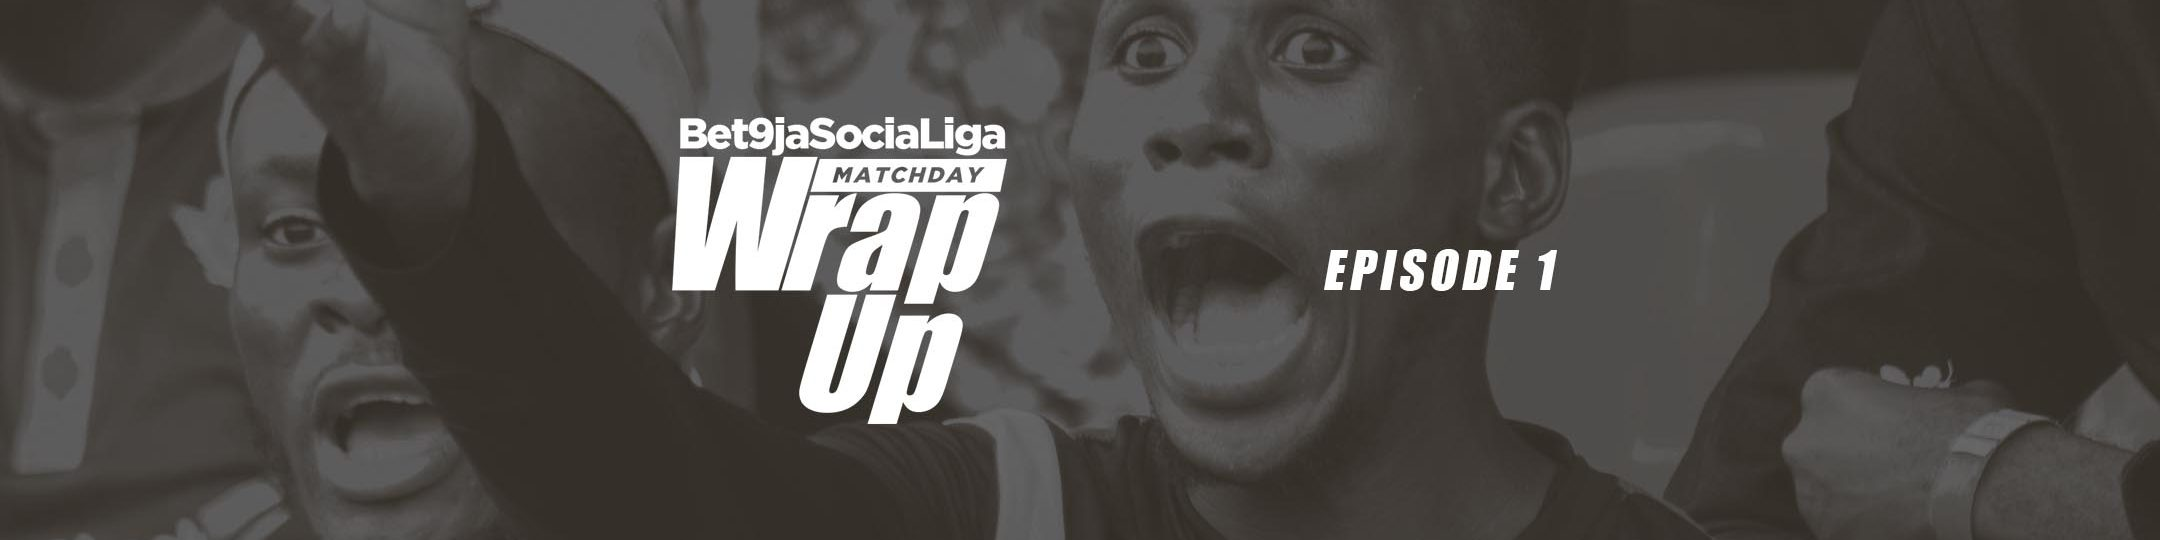 TheSociaLiga-WrapUp-Episode1-2160x1080